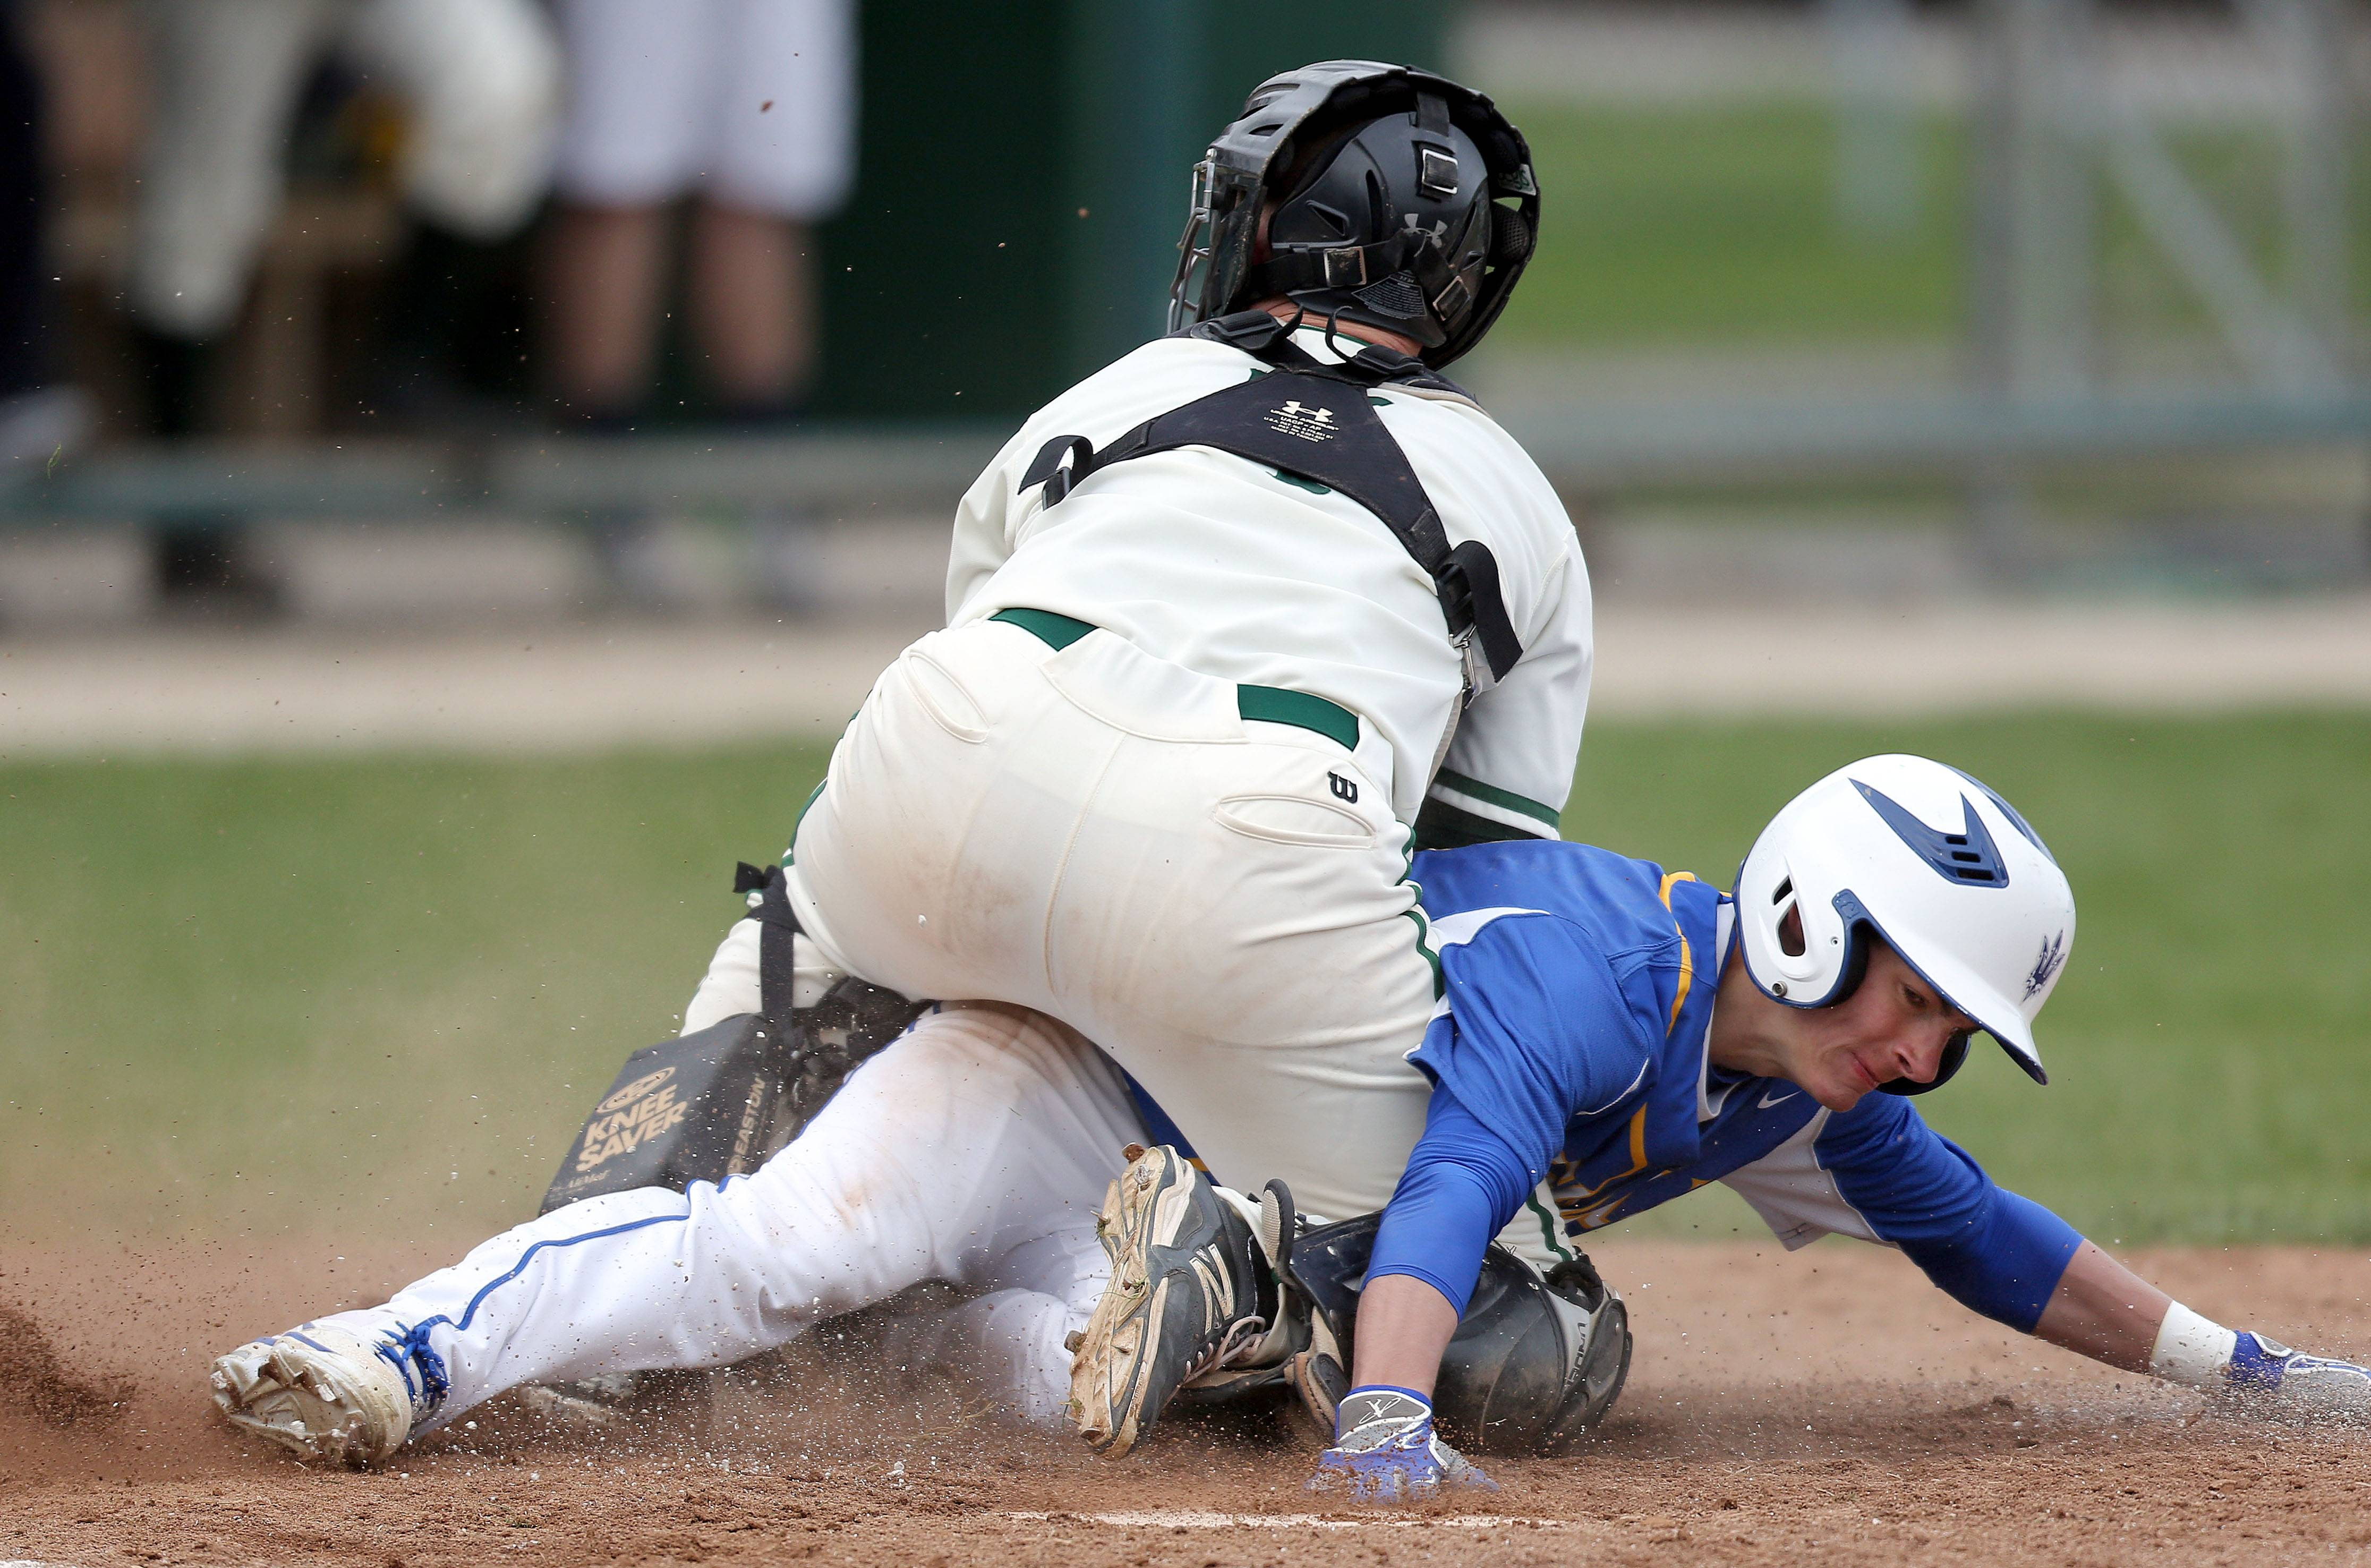 Stevenson catcher Joey Morris, left, tags out Warren's Brad Zahn at home plate Wednesday at Stevenson.